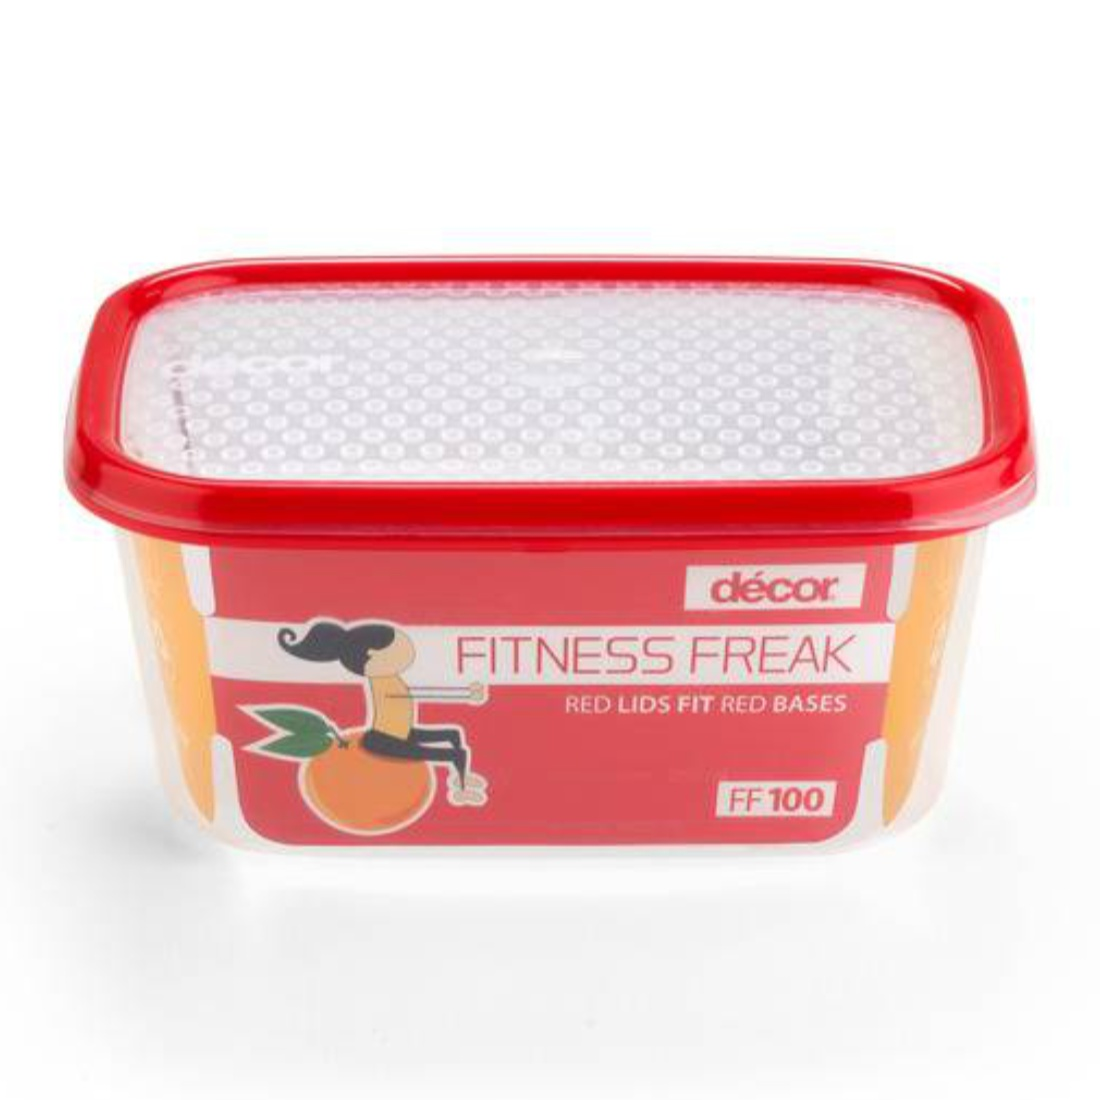 Fitness Freak 80 1L Glass Containers by Decor